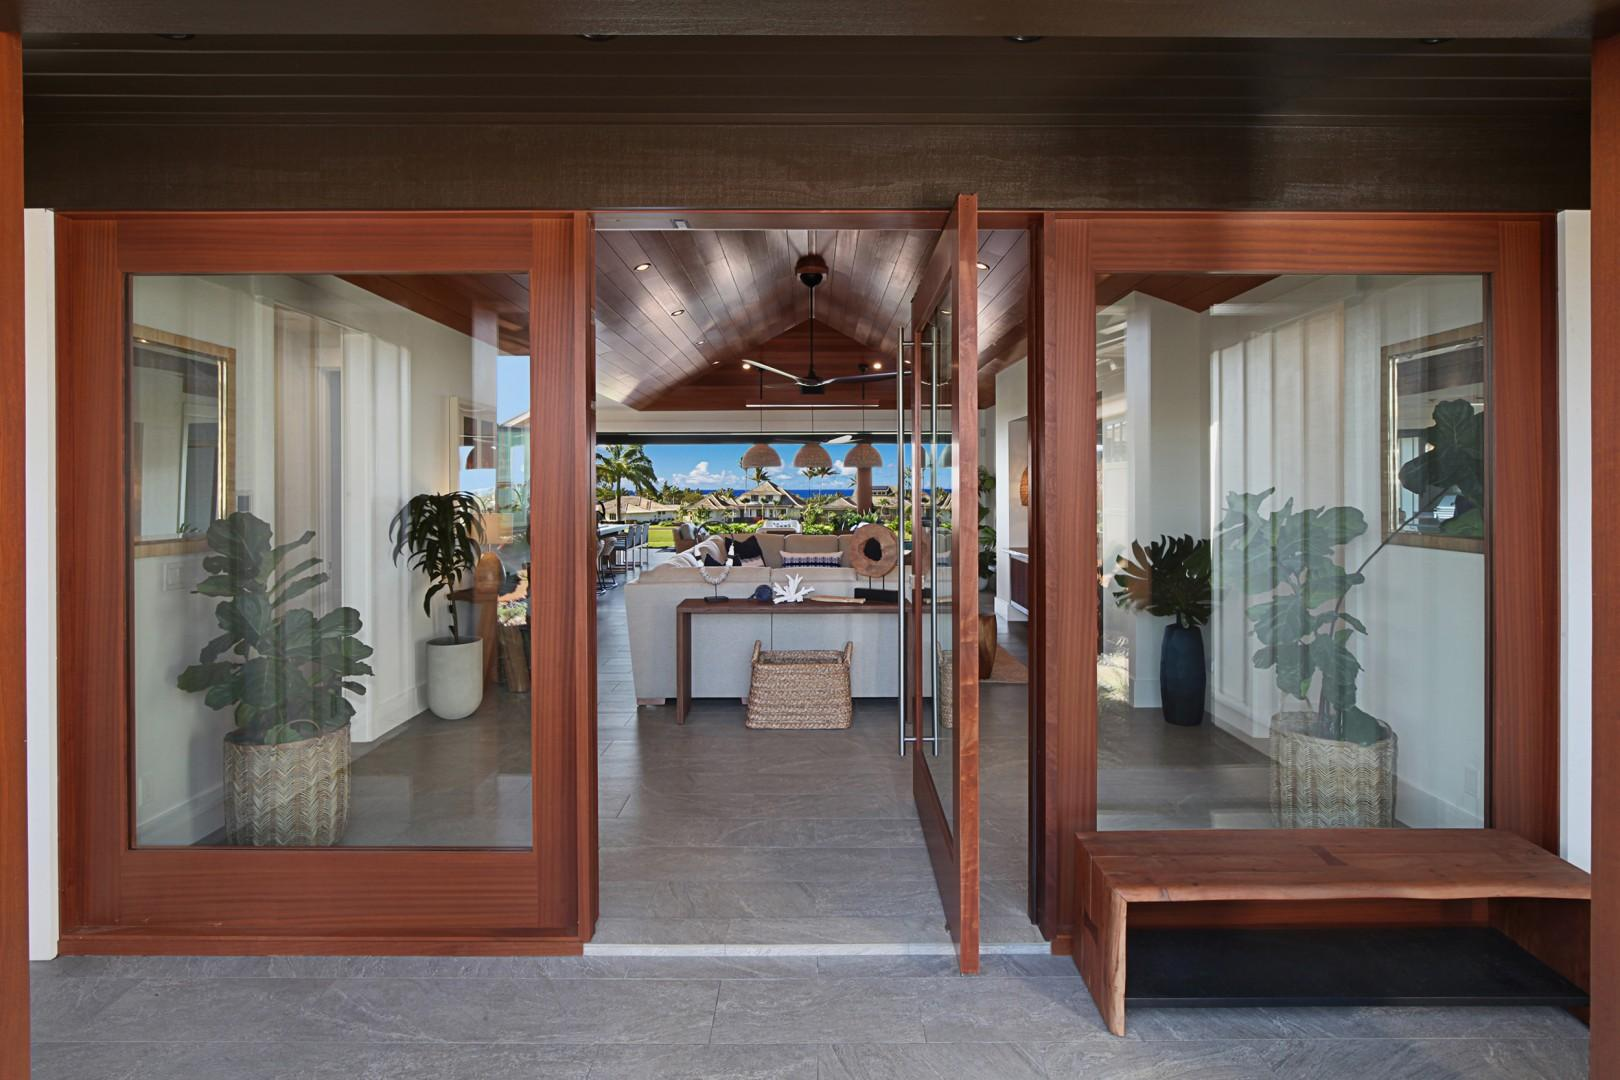 Entrance with beautiful pivot door and amazing views